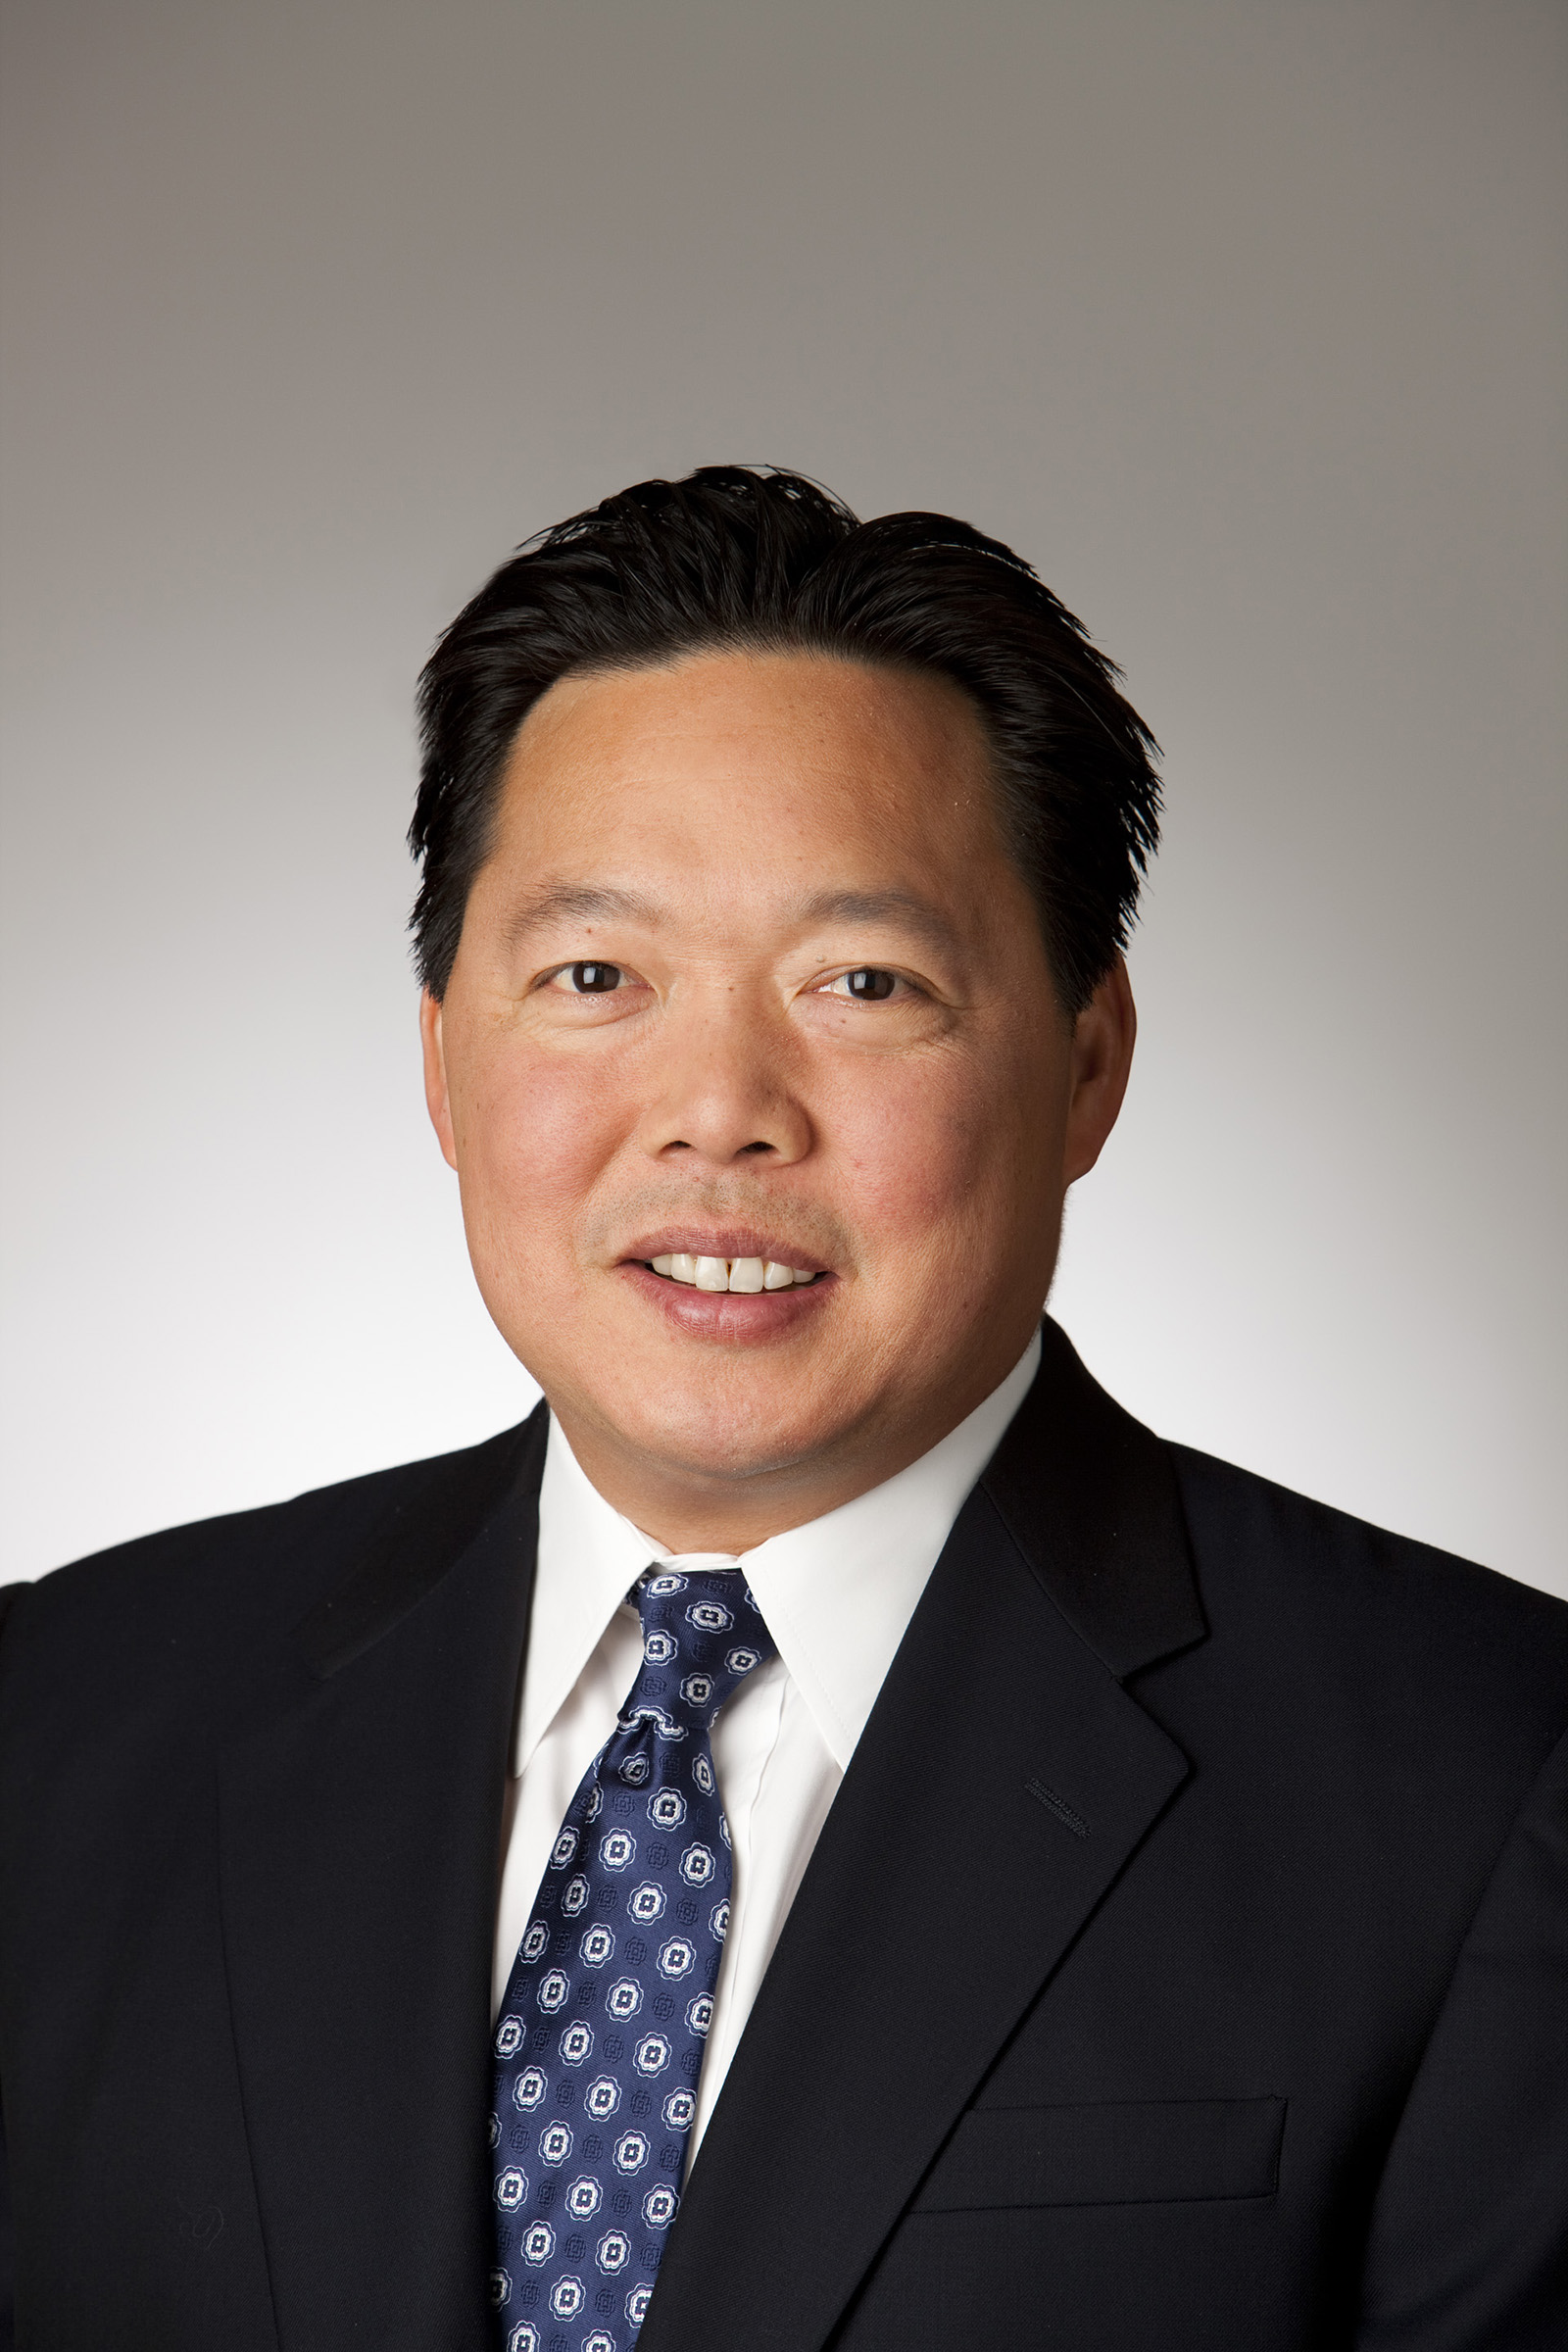 https://assets.sourcemedia.com/a8/c4/04defed040d8bc656d5e45bca3f5/ho-peter-chairman-and-ceo-of-bank-of-hawaii.jpg